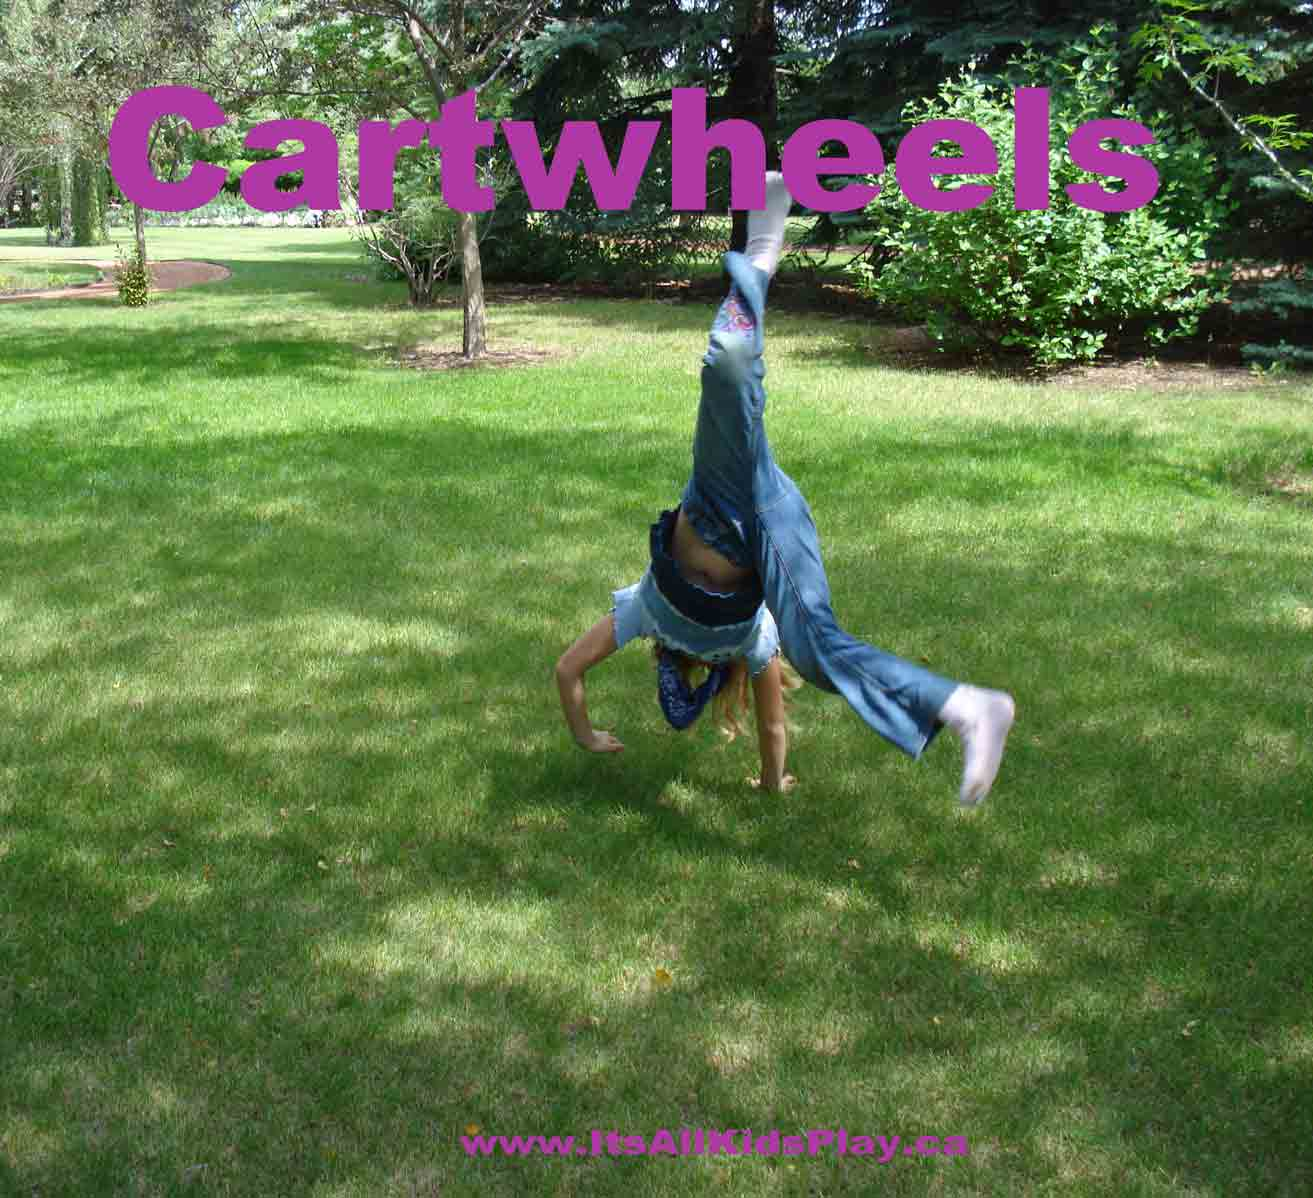 Cartwheels, somersaults, hand-stands, balancing, and more! What can ...